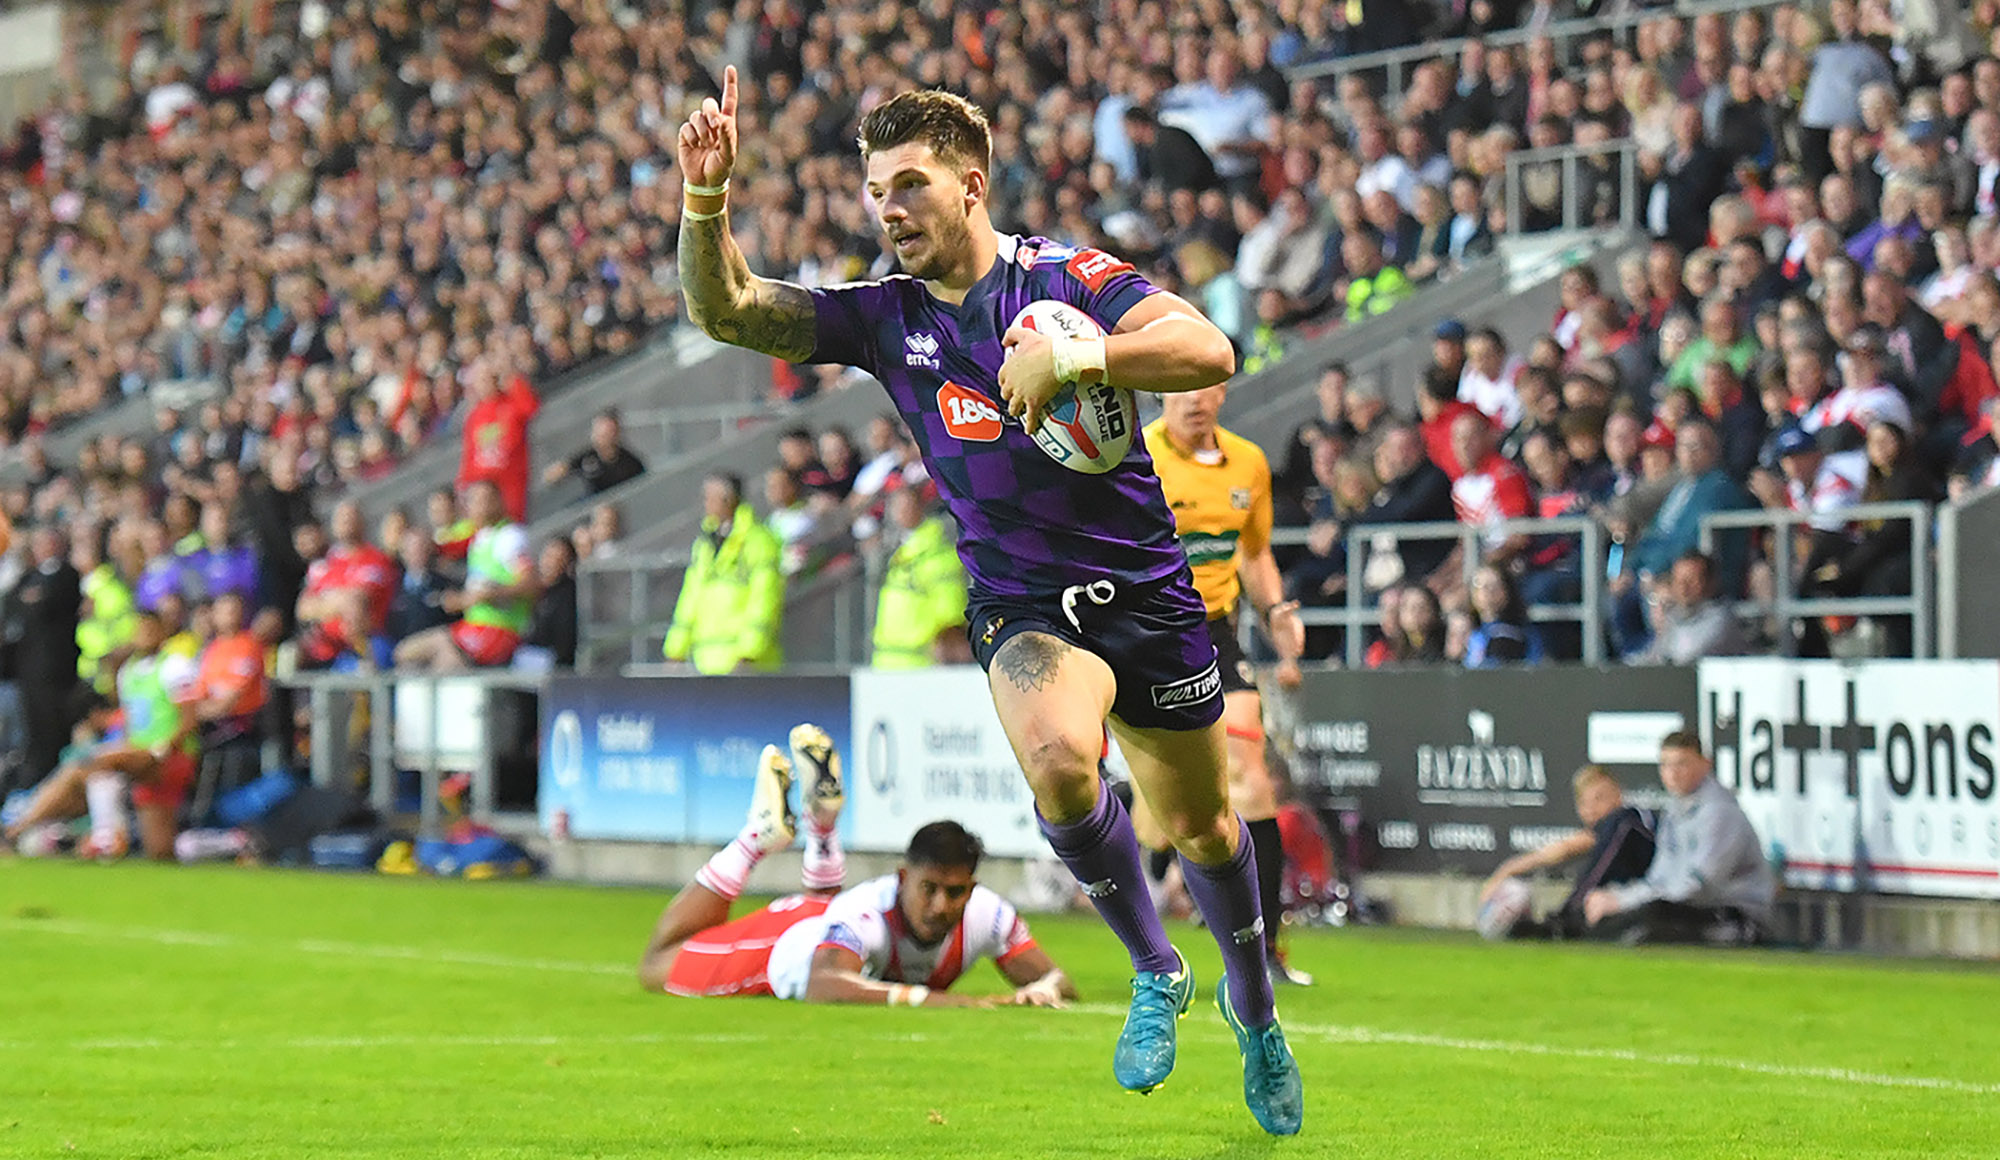 St Helens 16 Wigan 26